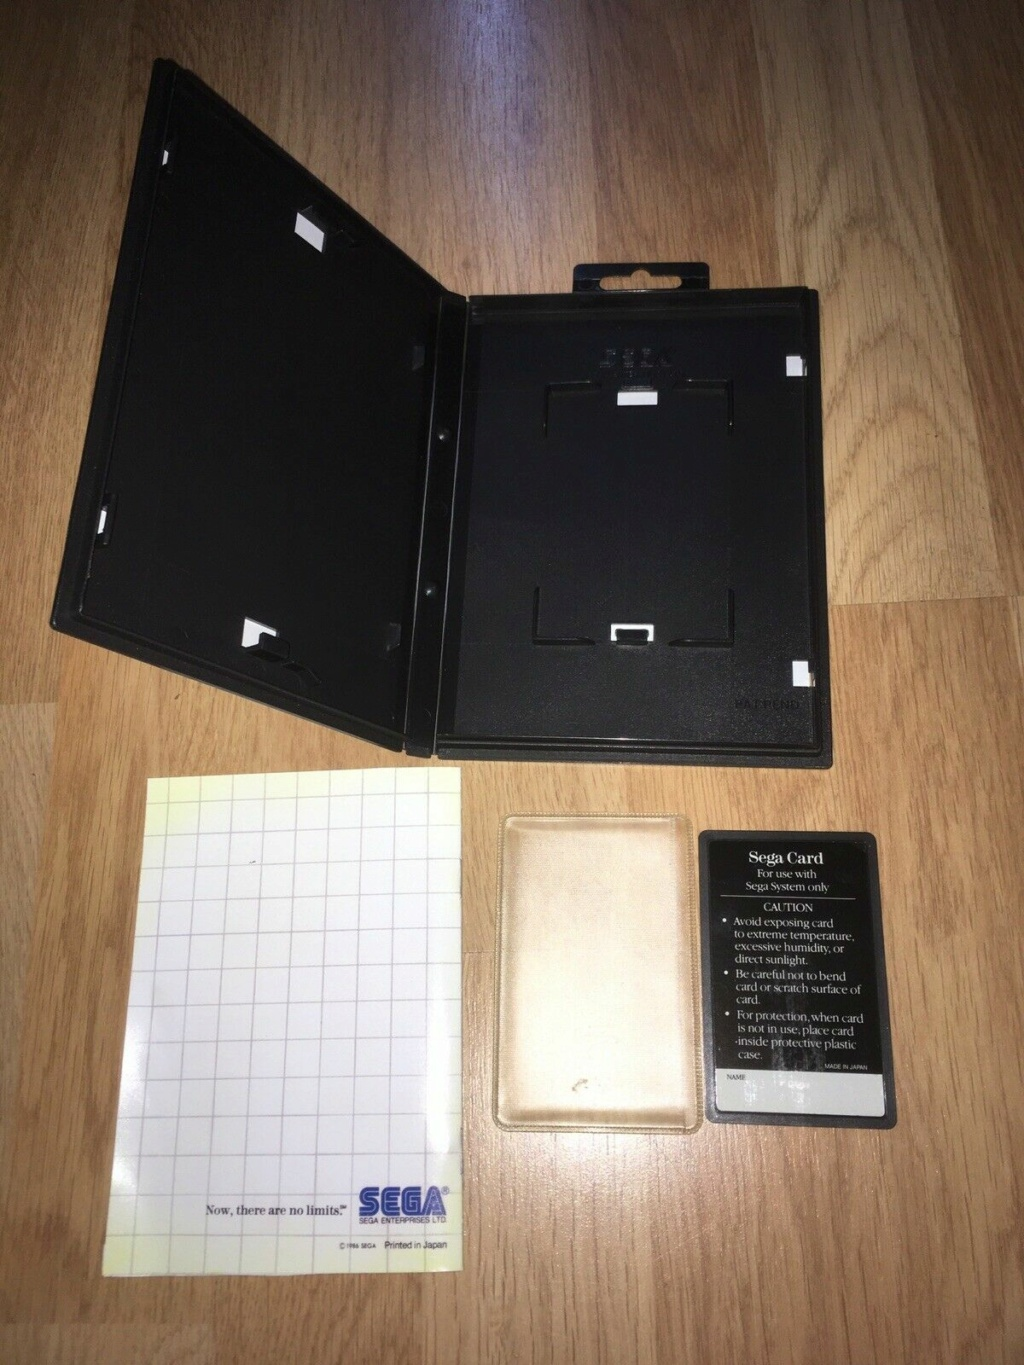 [VDS] HANG-ON The Sega Card Master System complet en boîte et notice 04hang10